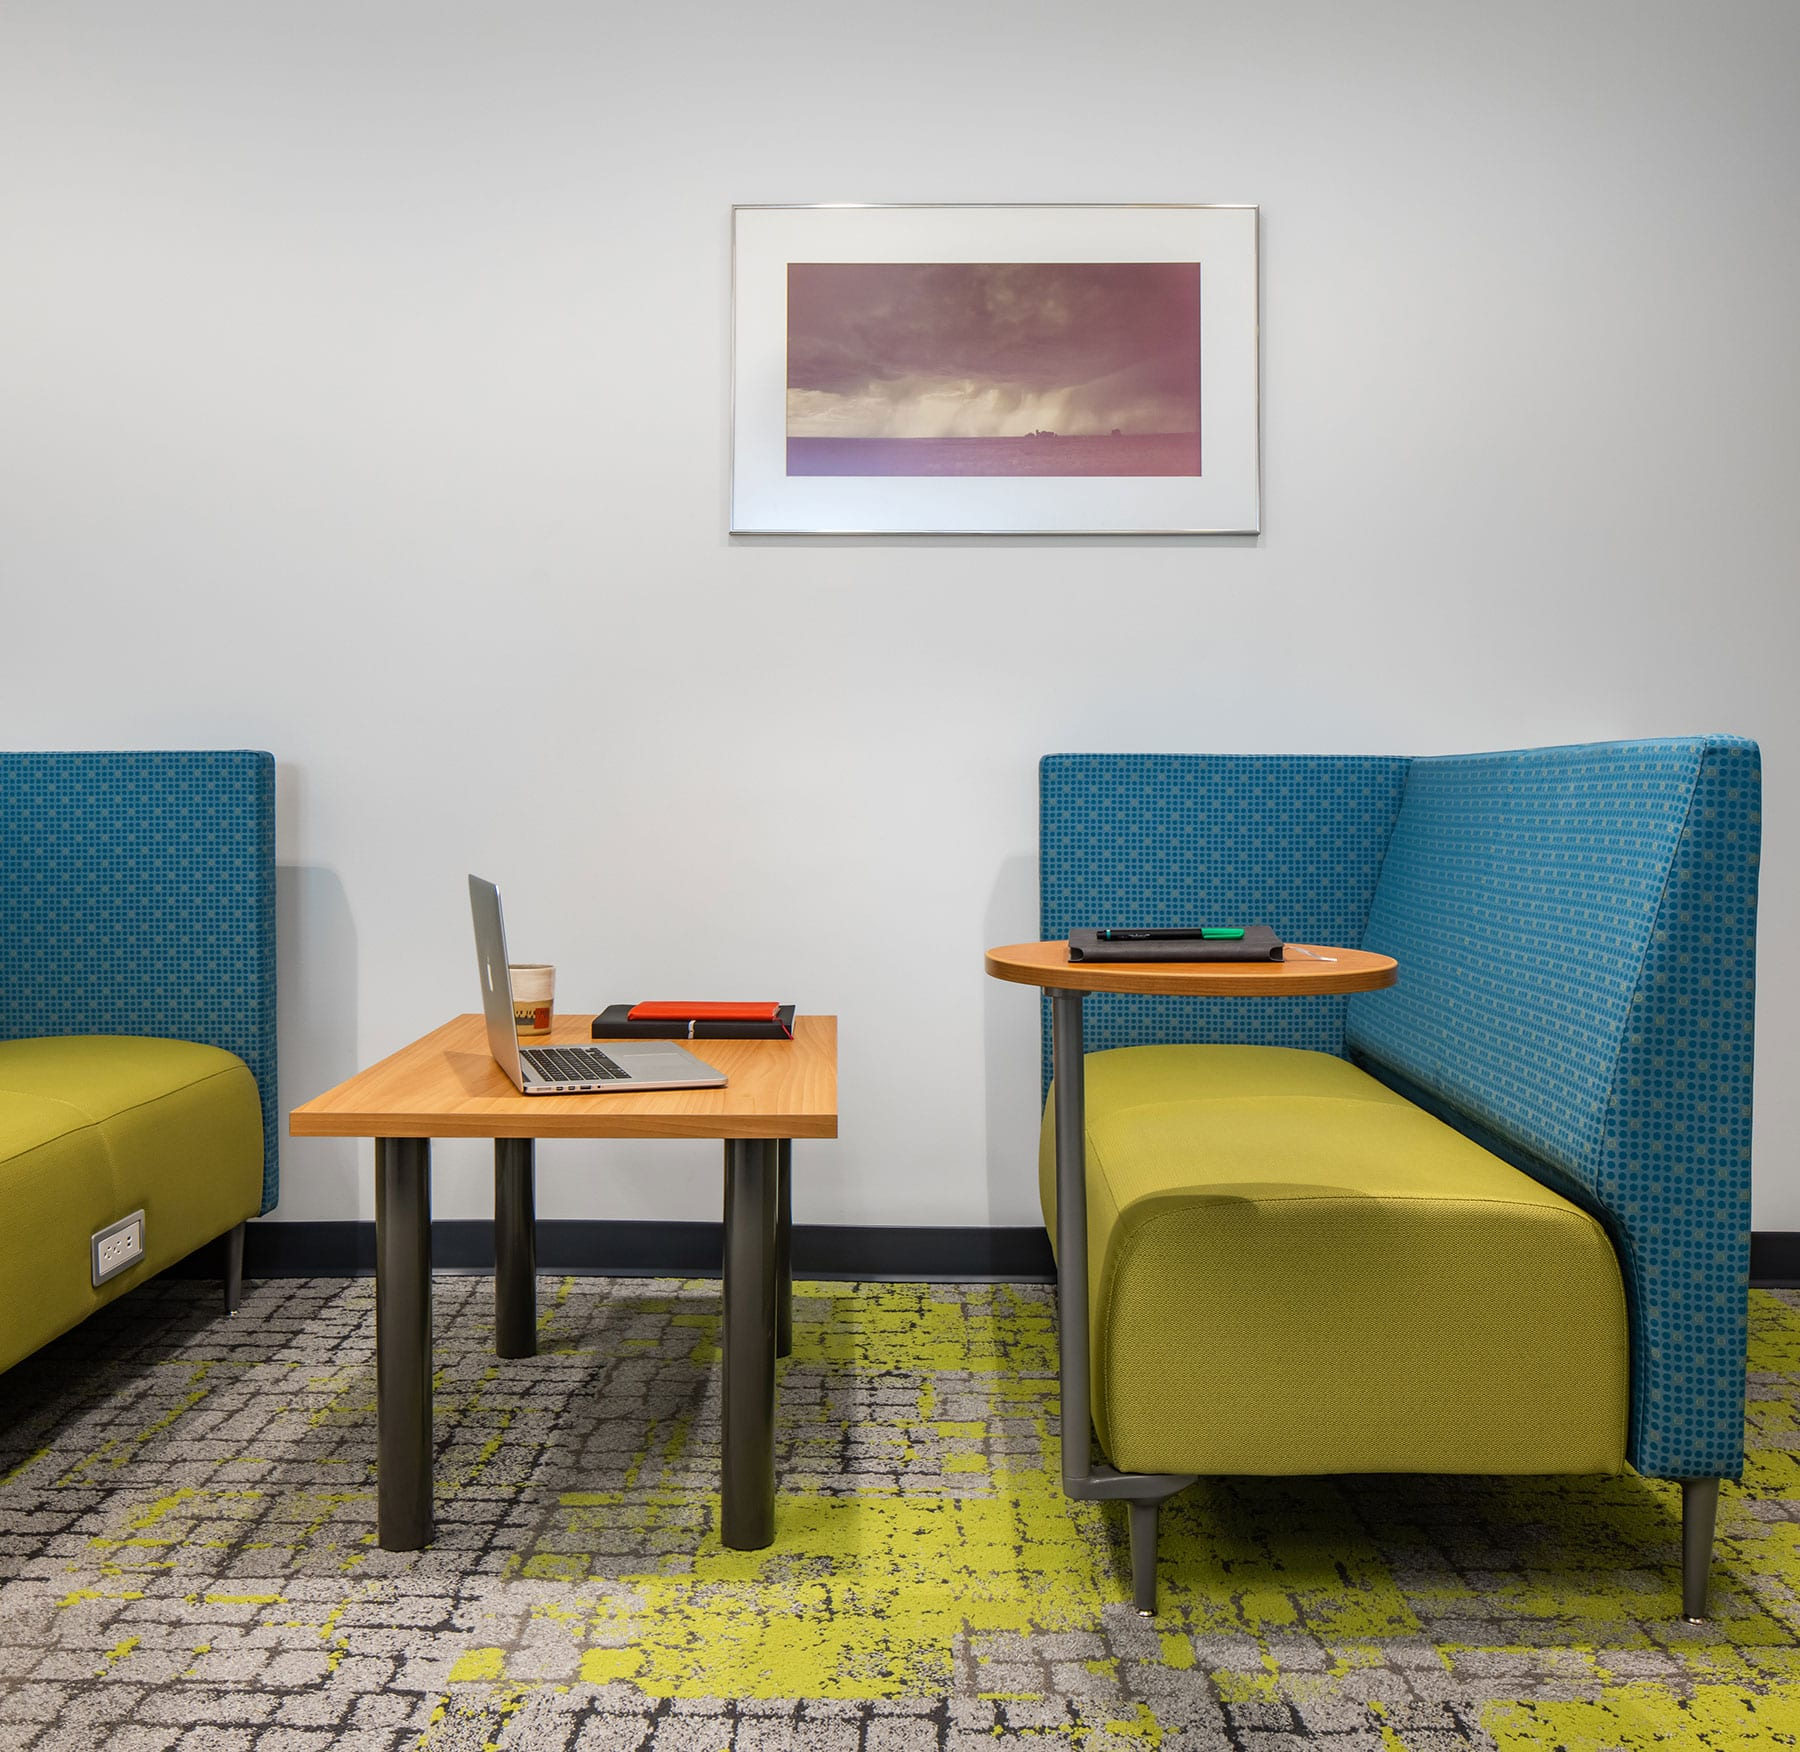 Flexible collaborative workspace for teamwork or activity-based working